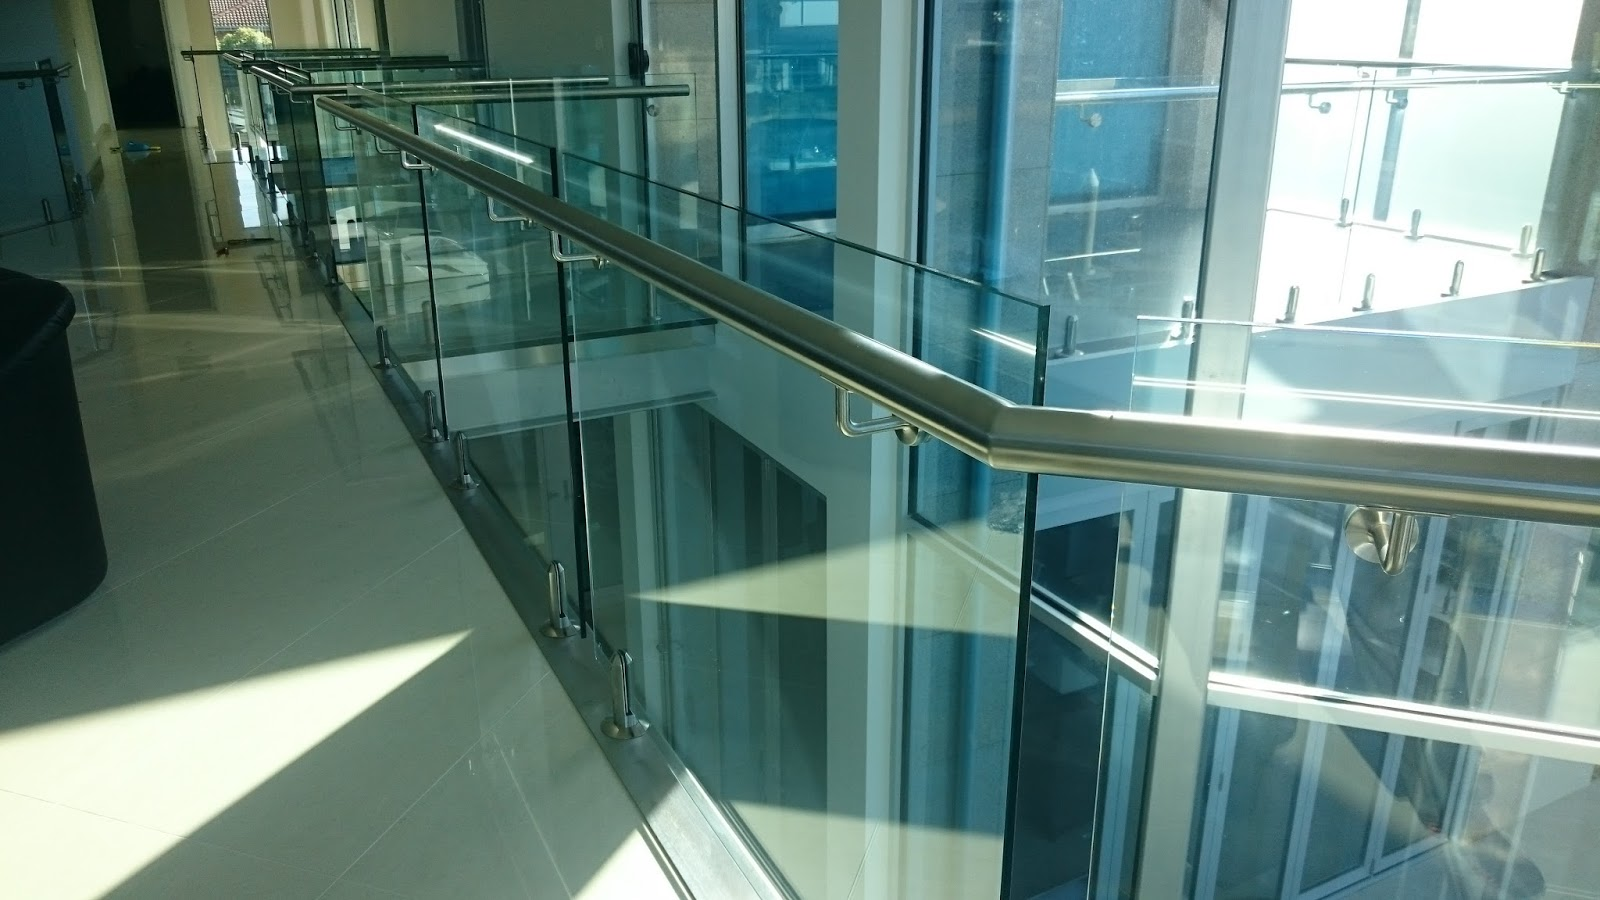 How to Install Stainless Steel Wire Balustrade?